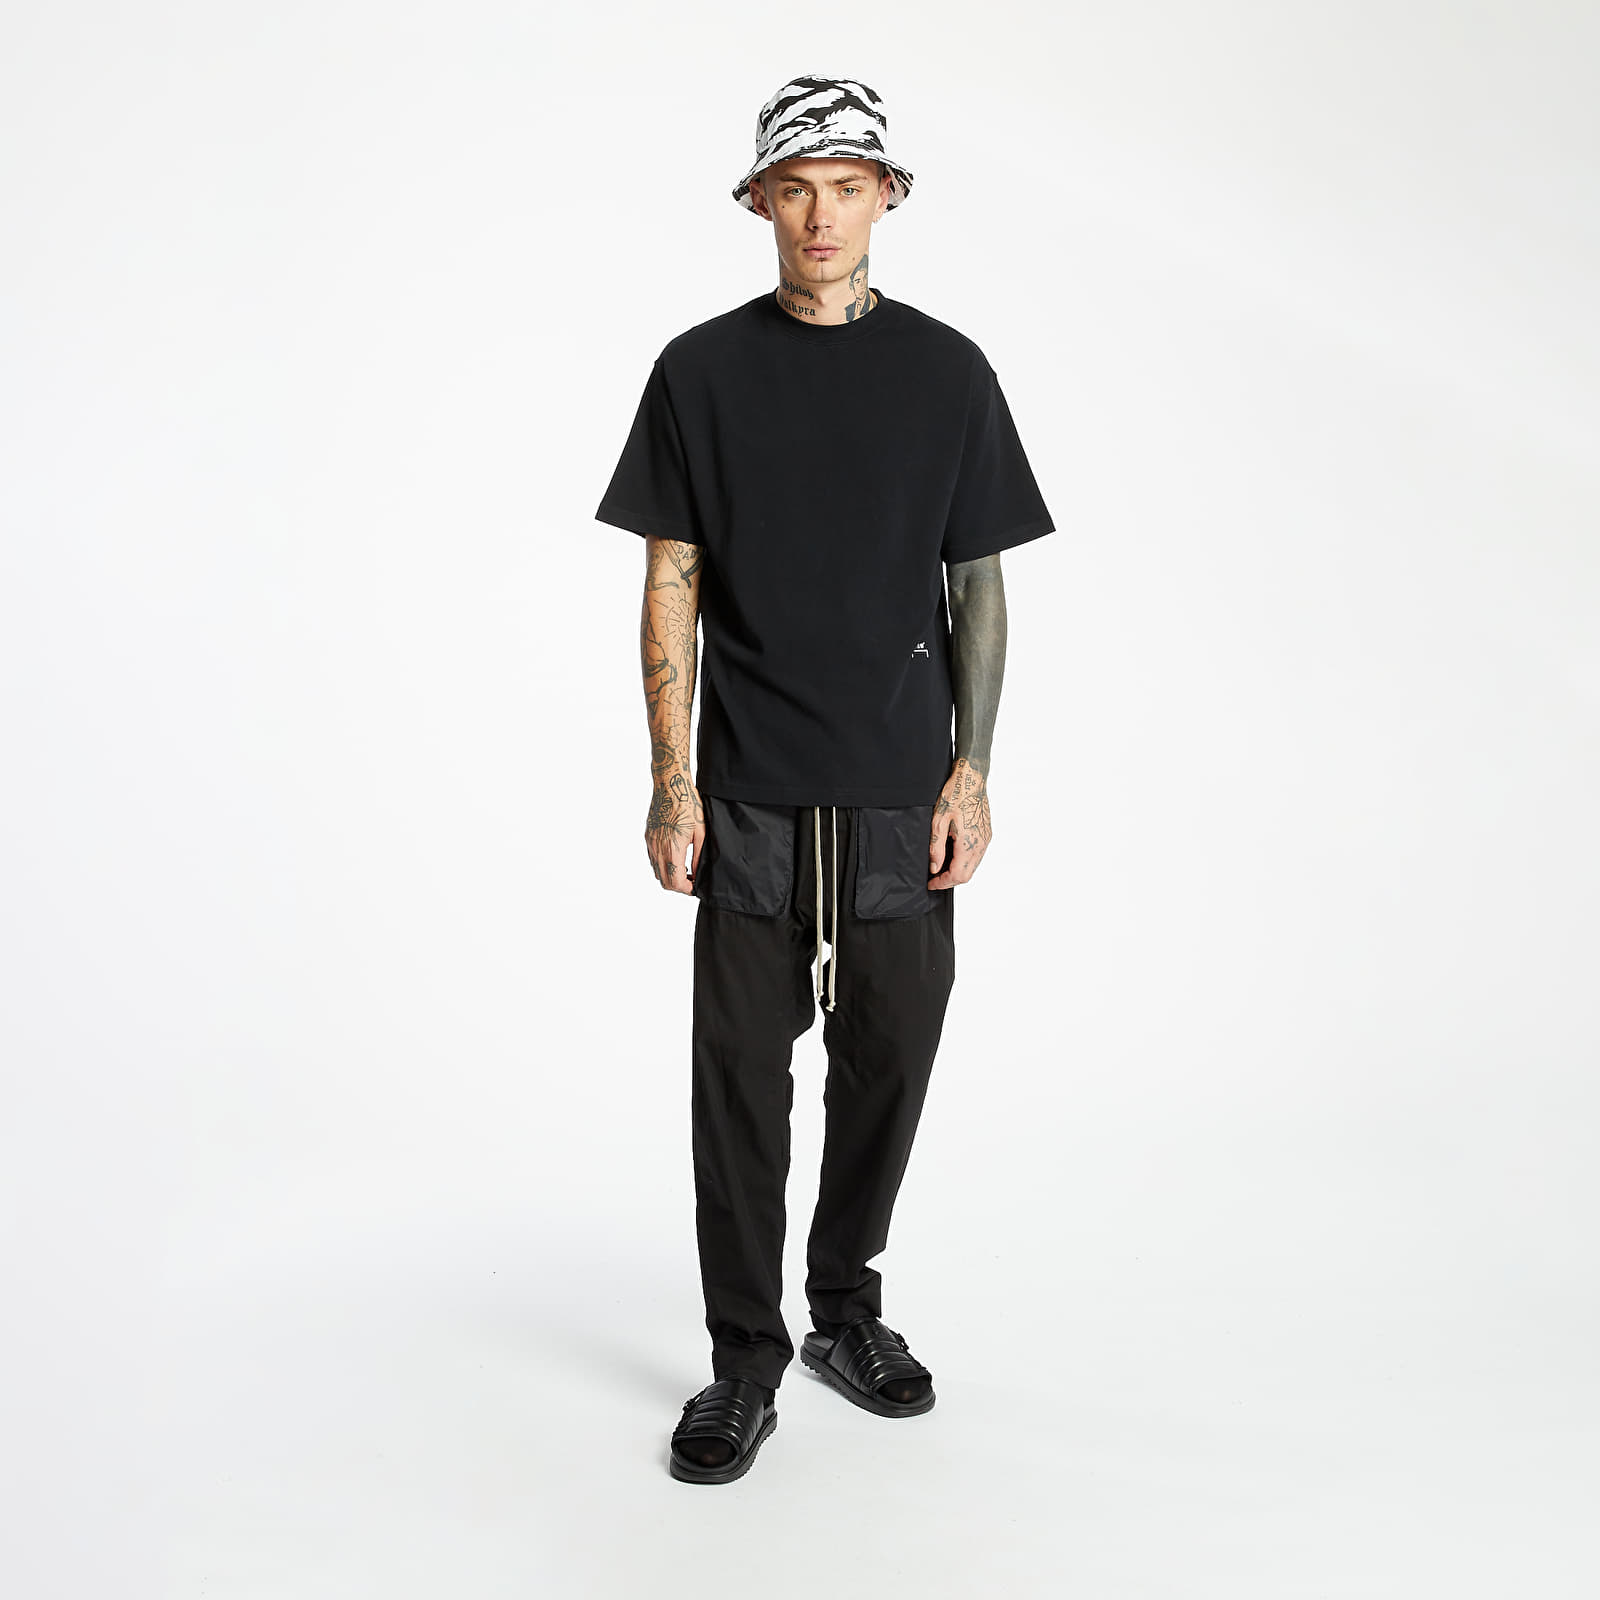 A-COLD-WALL* Classic Logo Tee Black